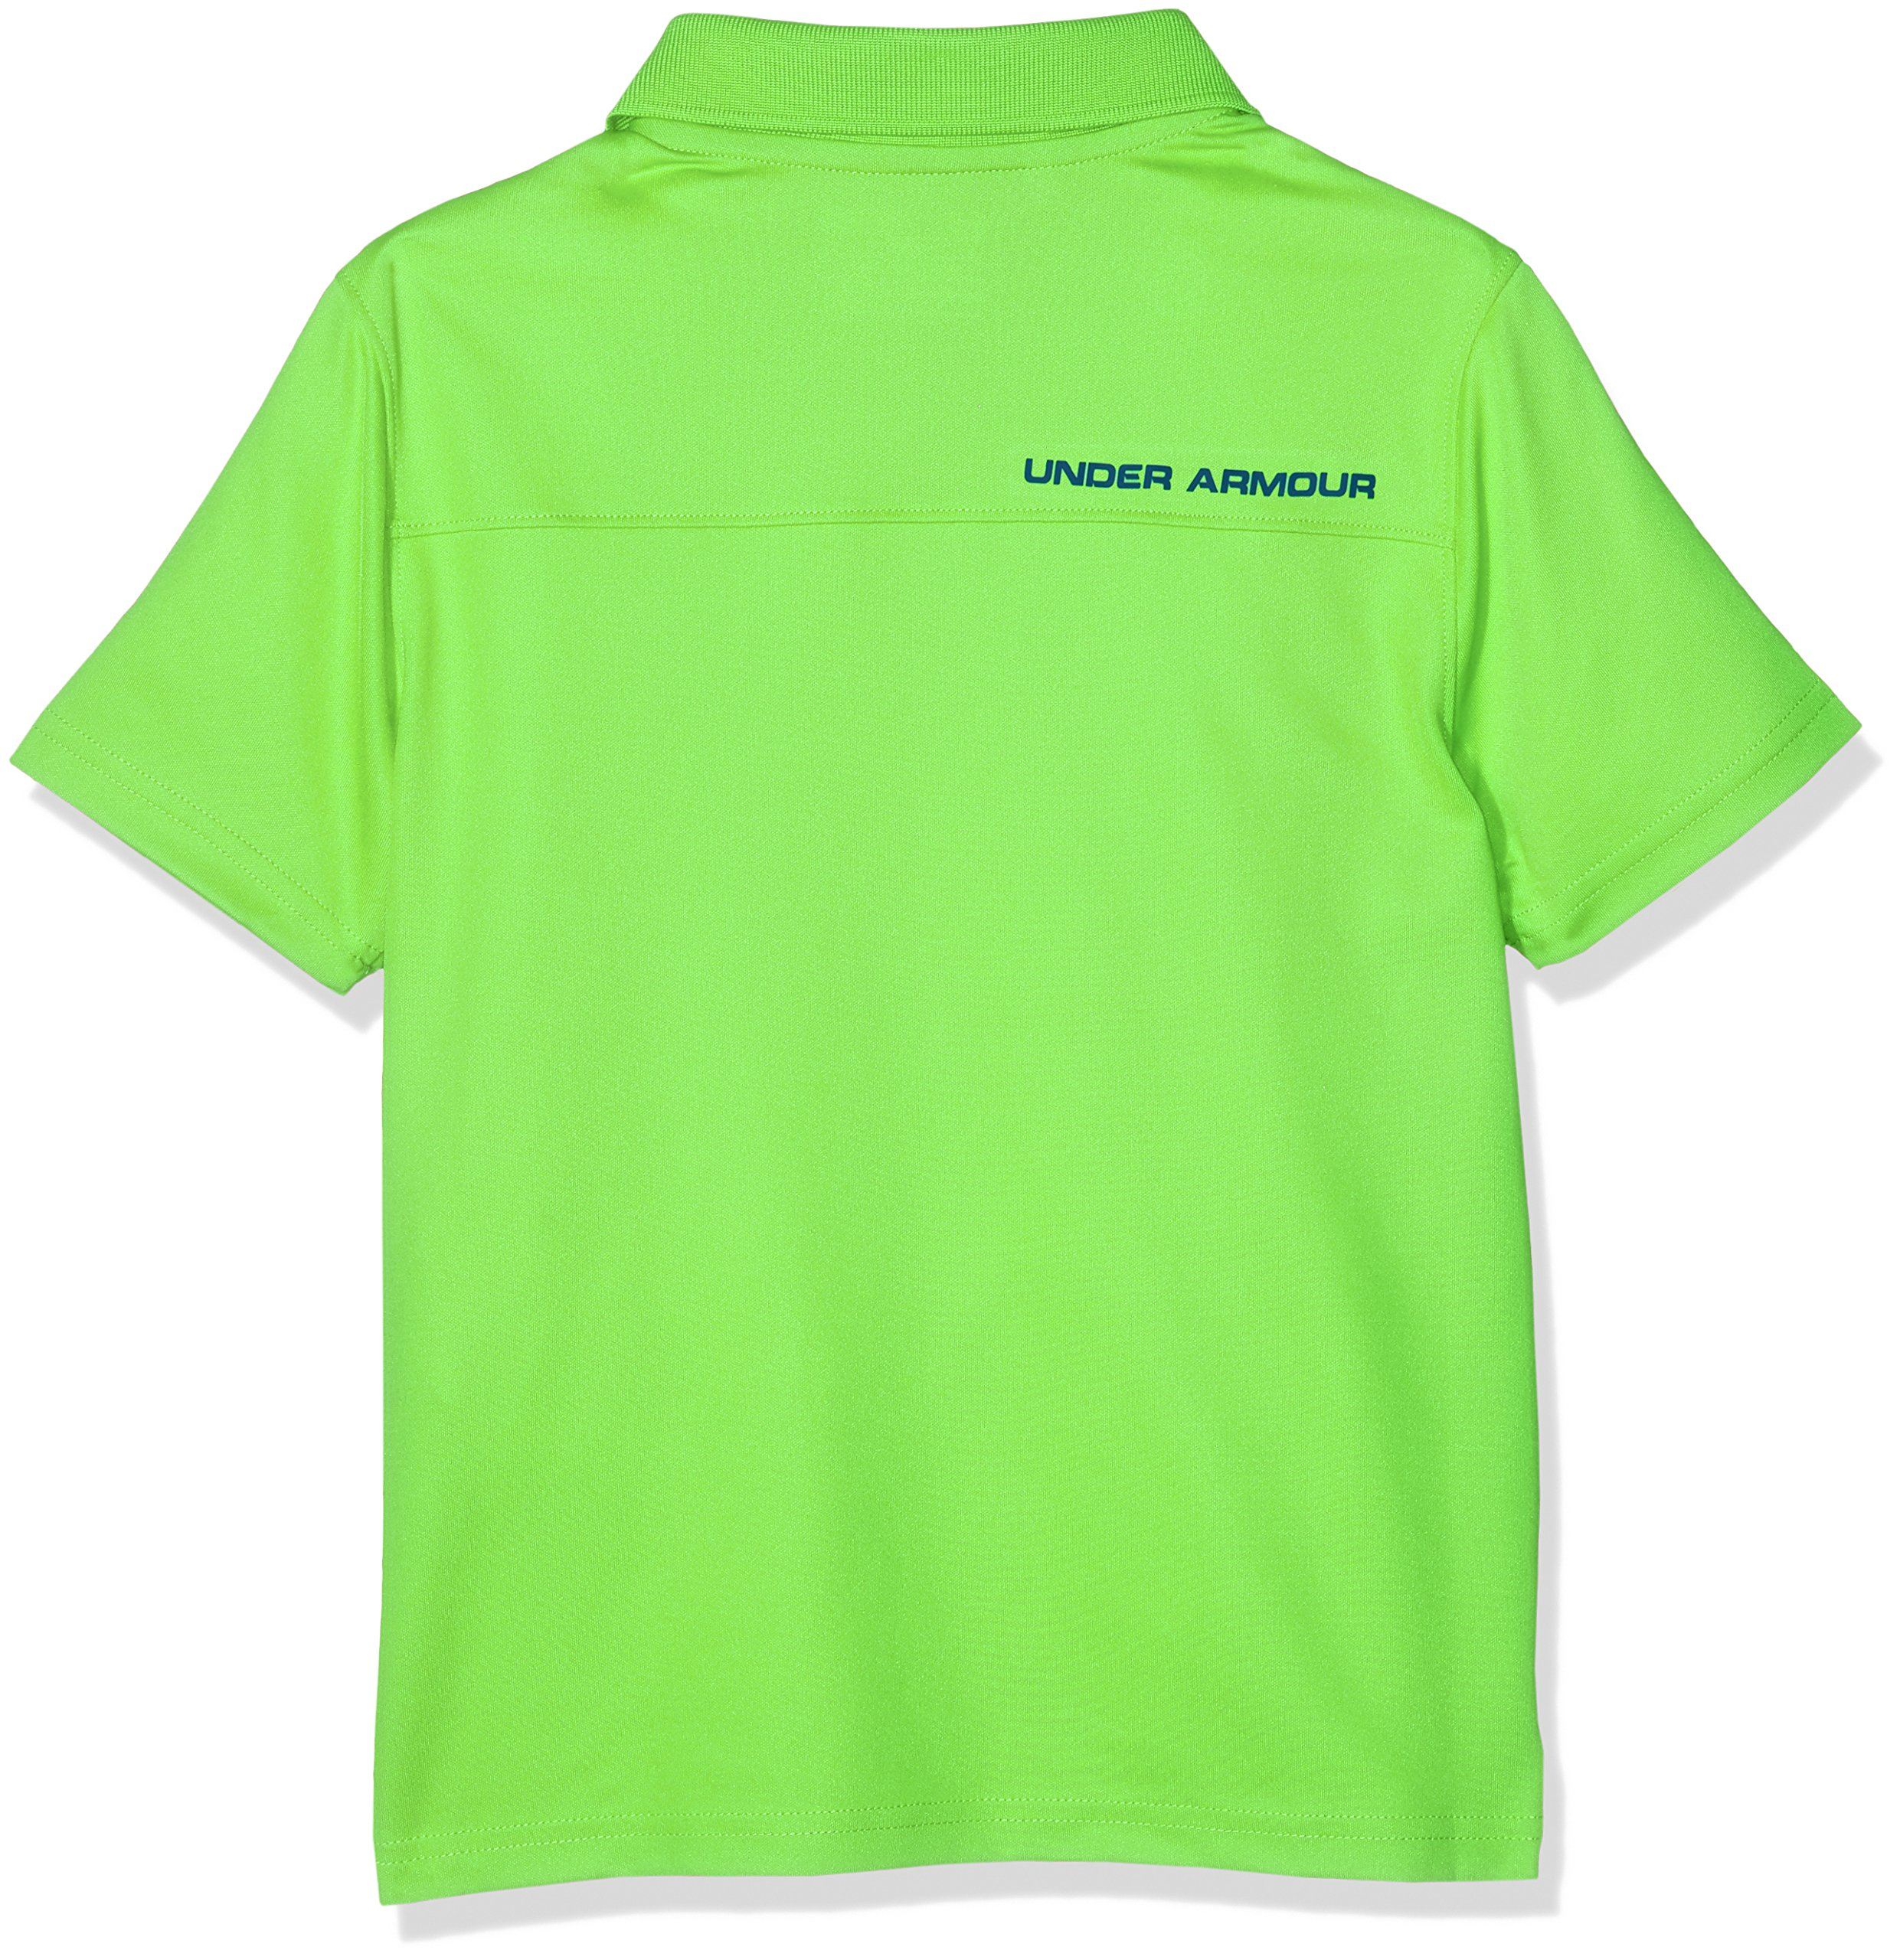 Under Armour Boys' Performance Polo, Poison (327)/Academy, Youth Small by Under Armour (Image #2)